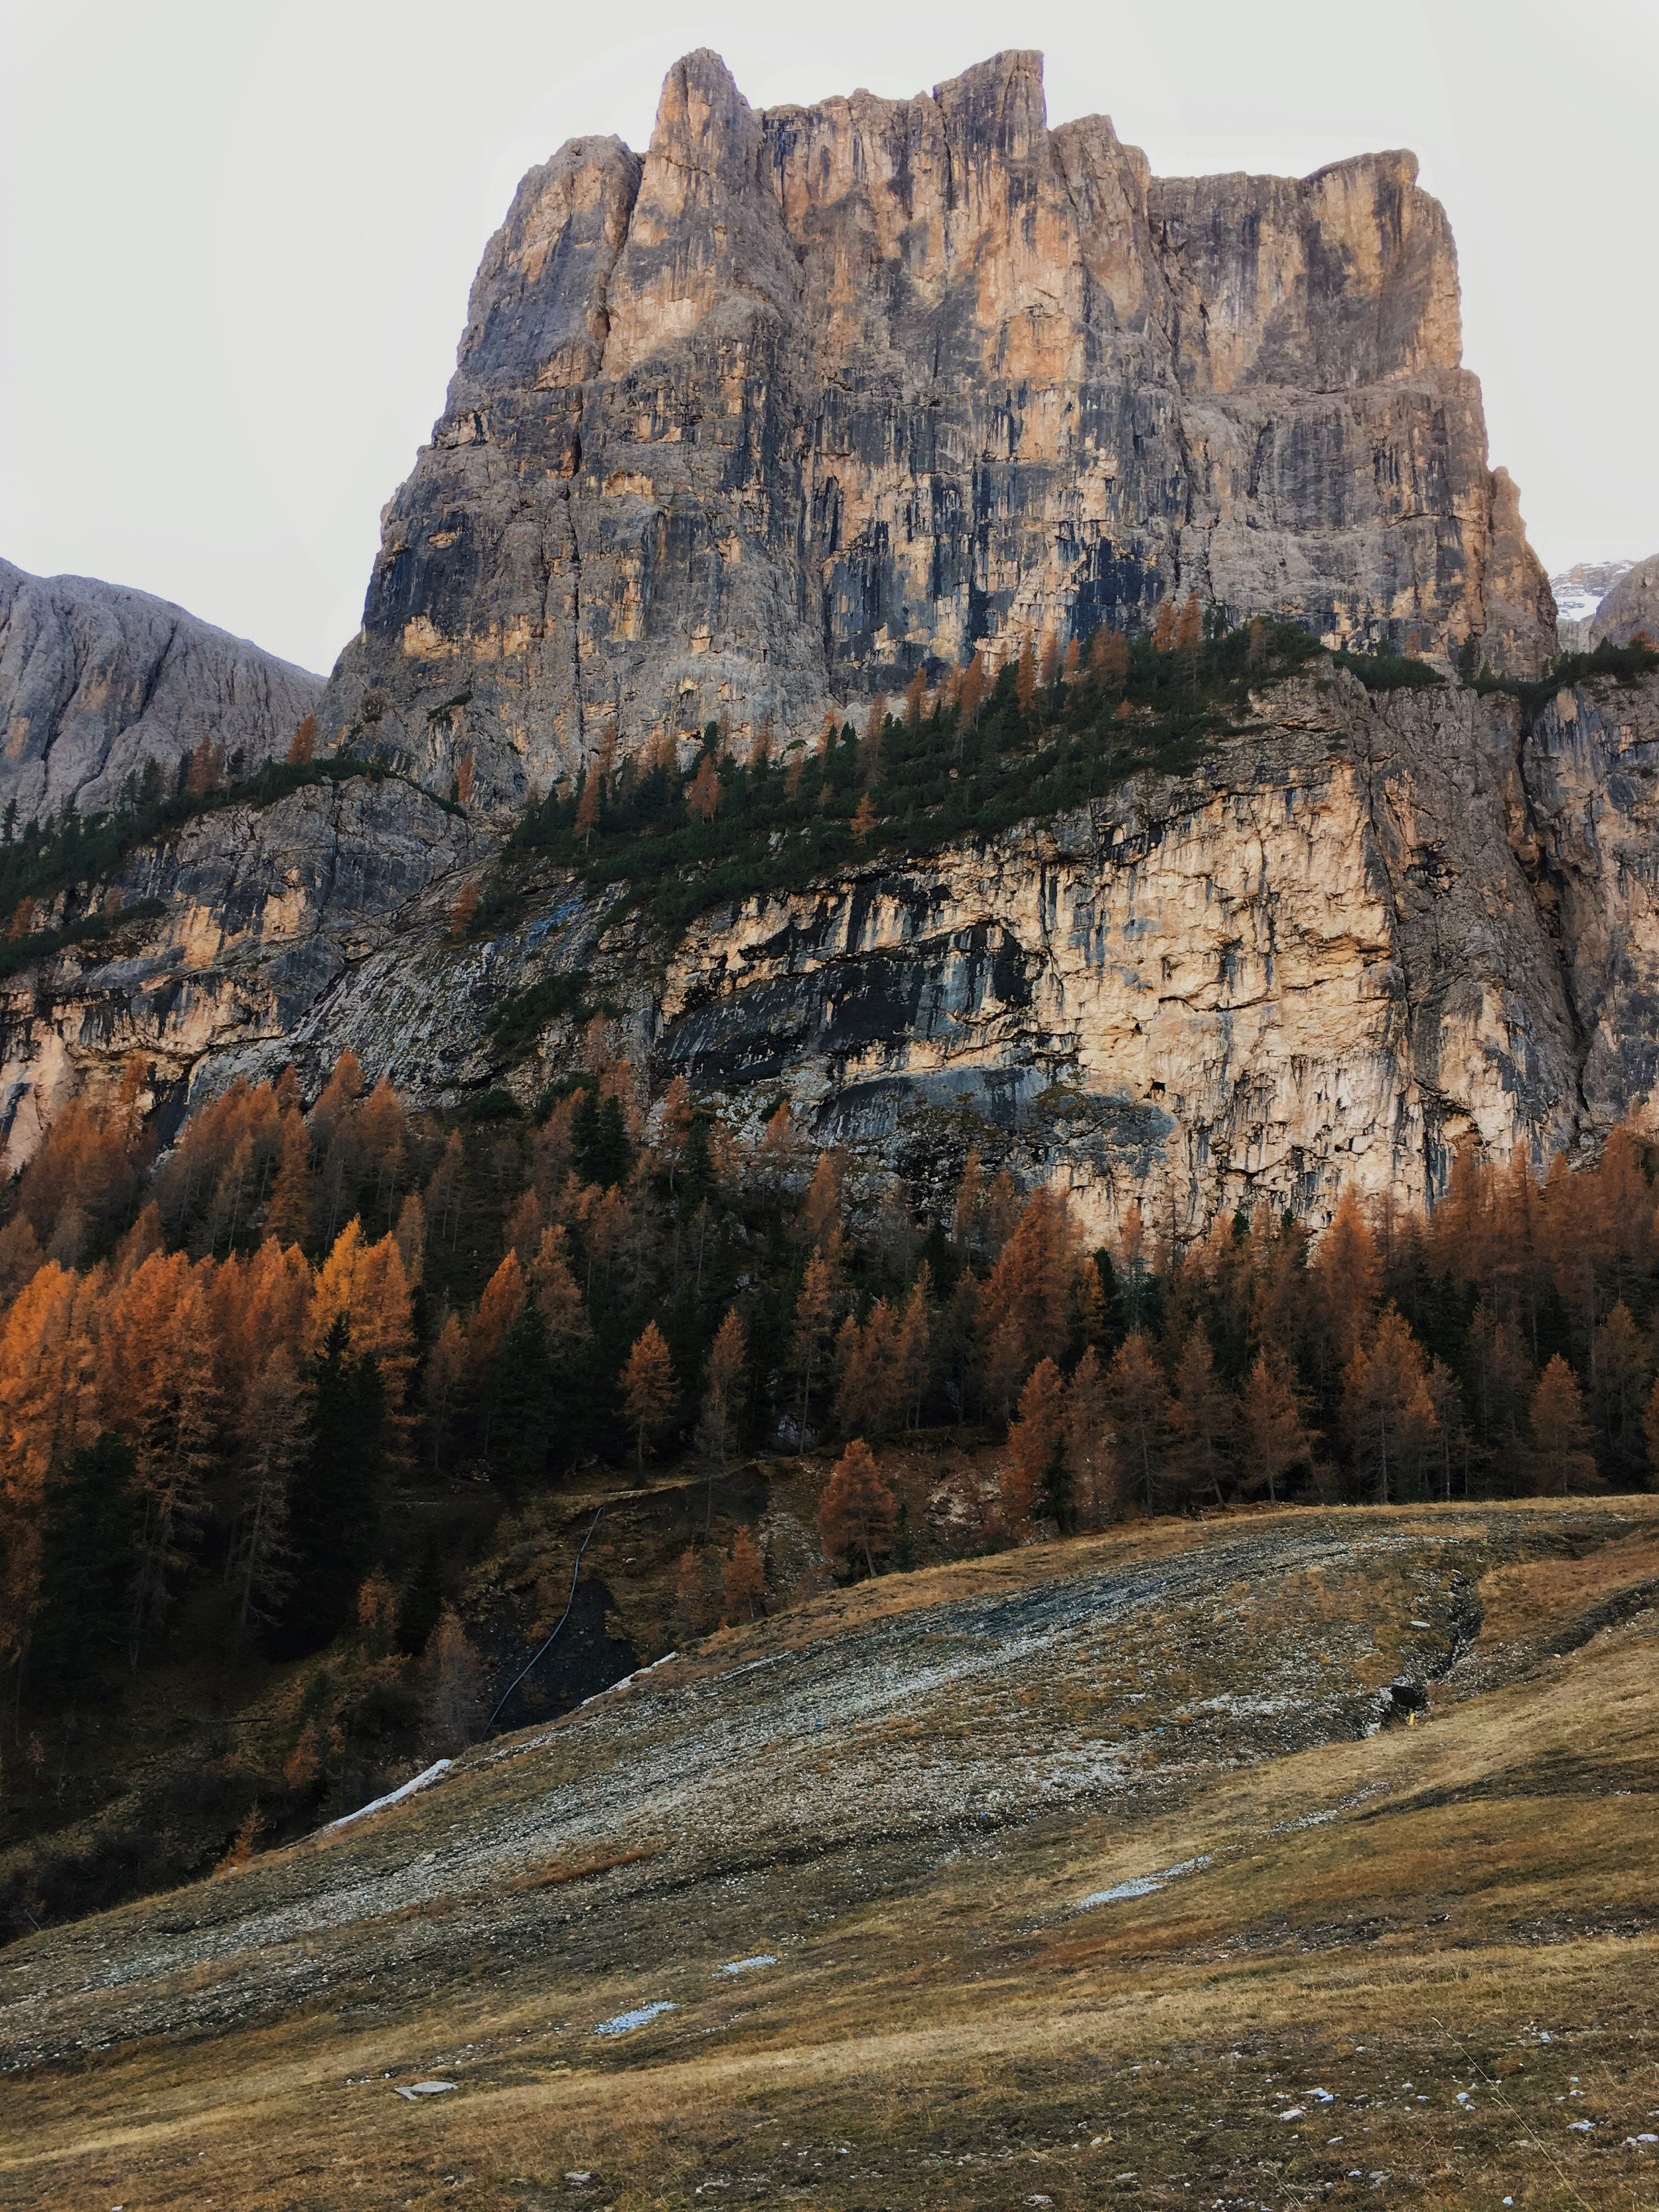 Somewhere in the Dolomites, just driving around and reveling in the beauty!